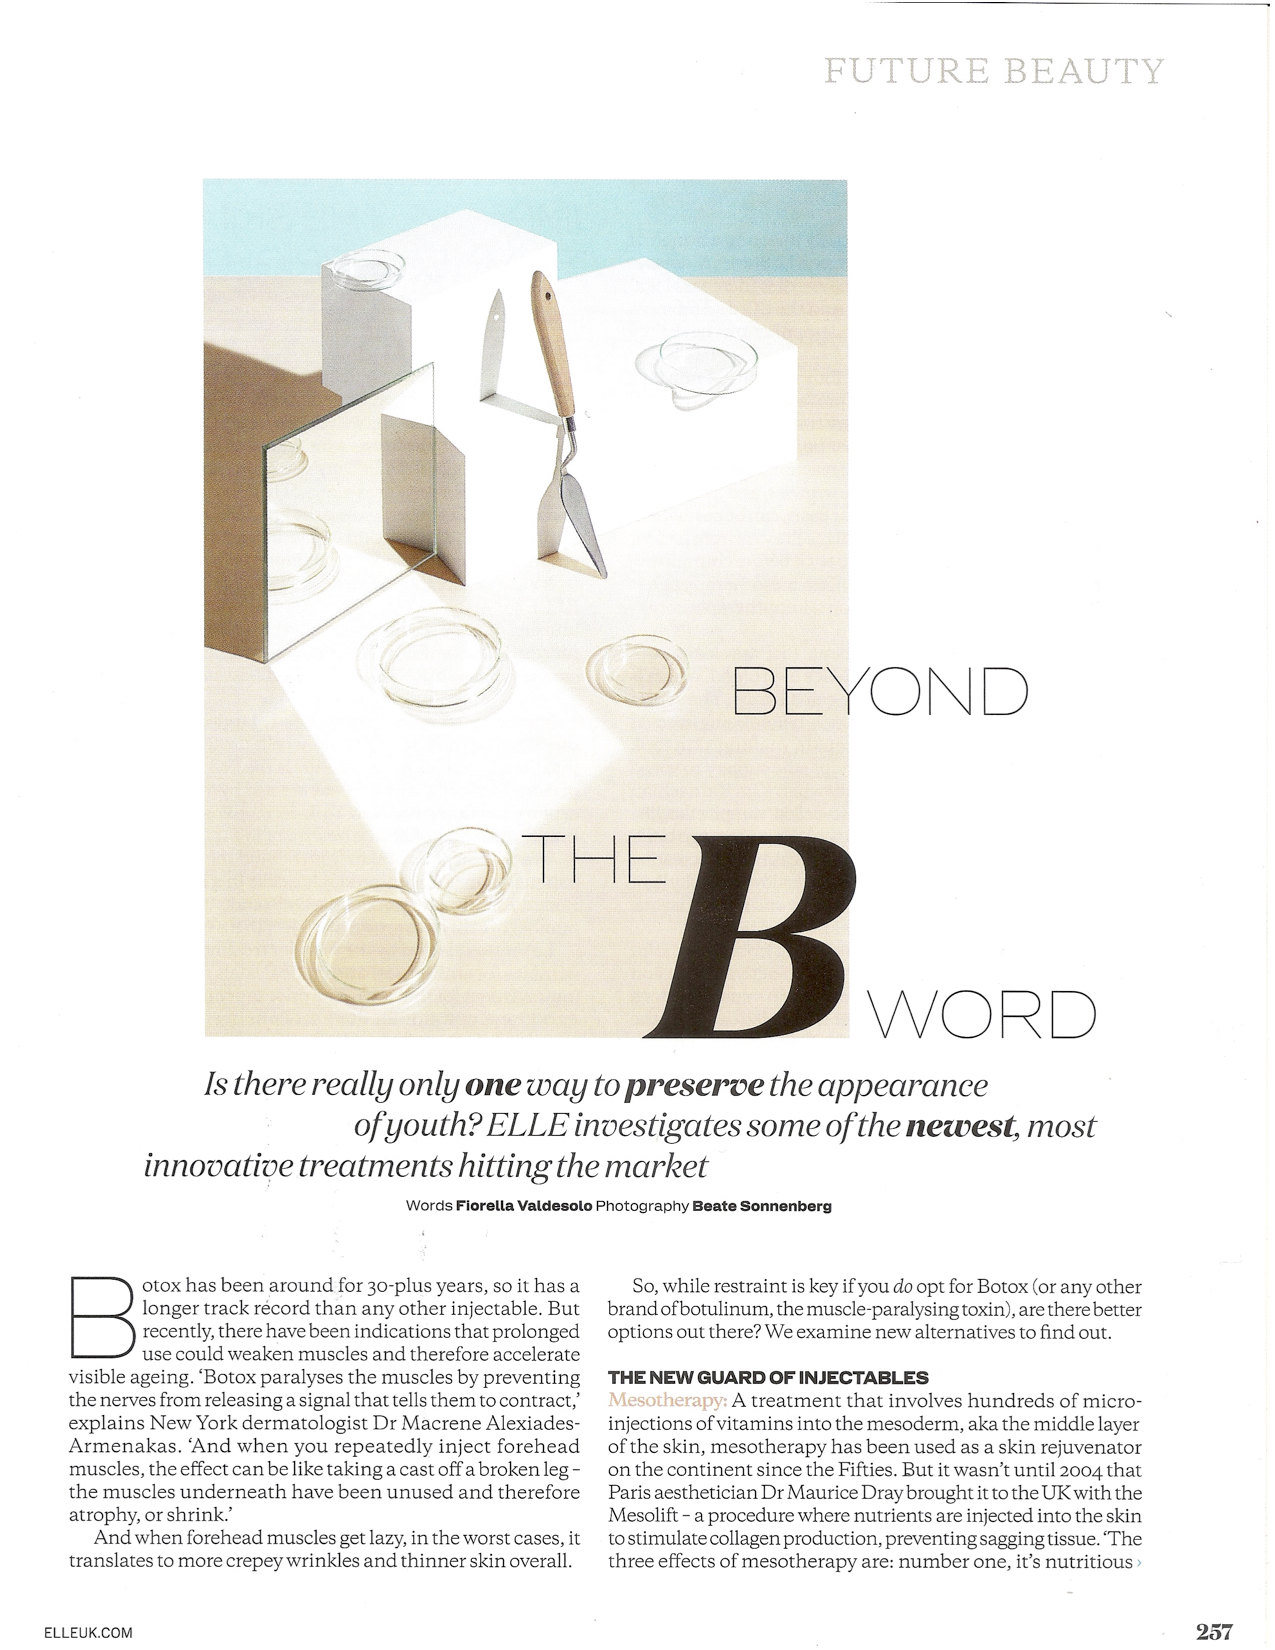 ELLE UK- Beyond The B Word 2014 pg 1.jpg